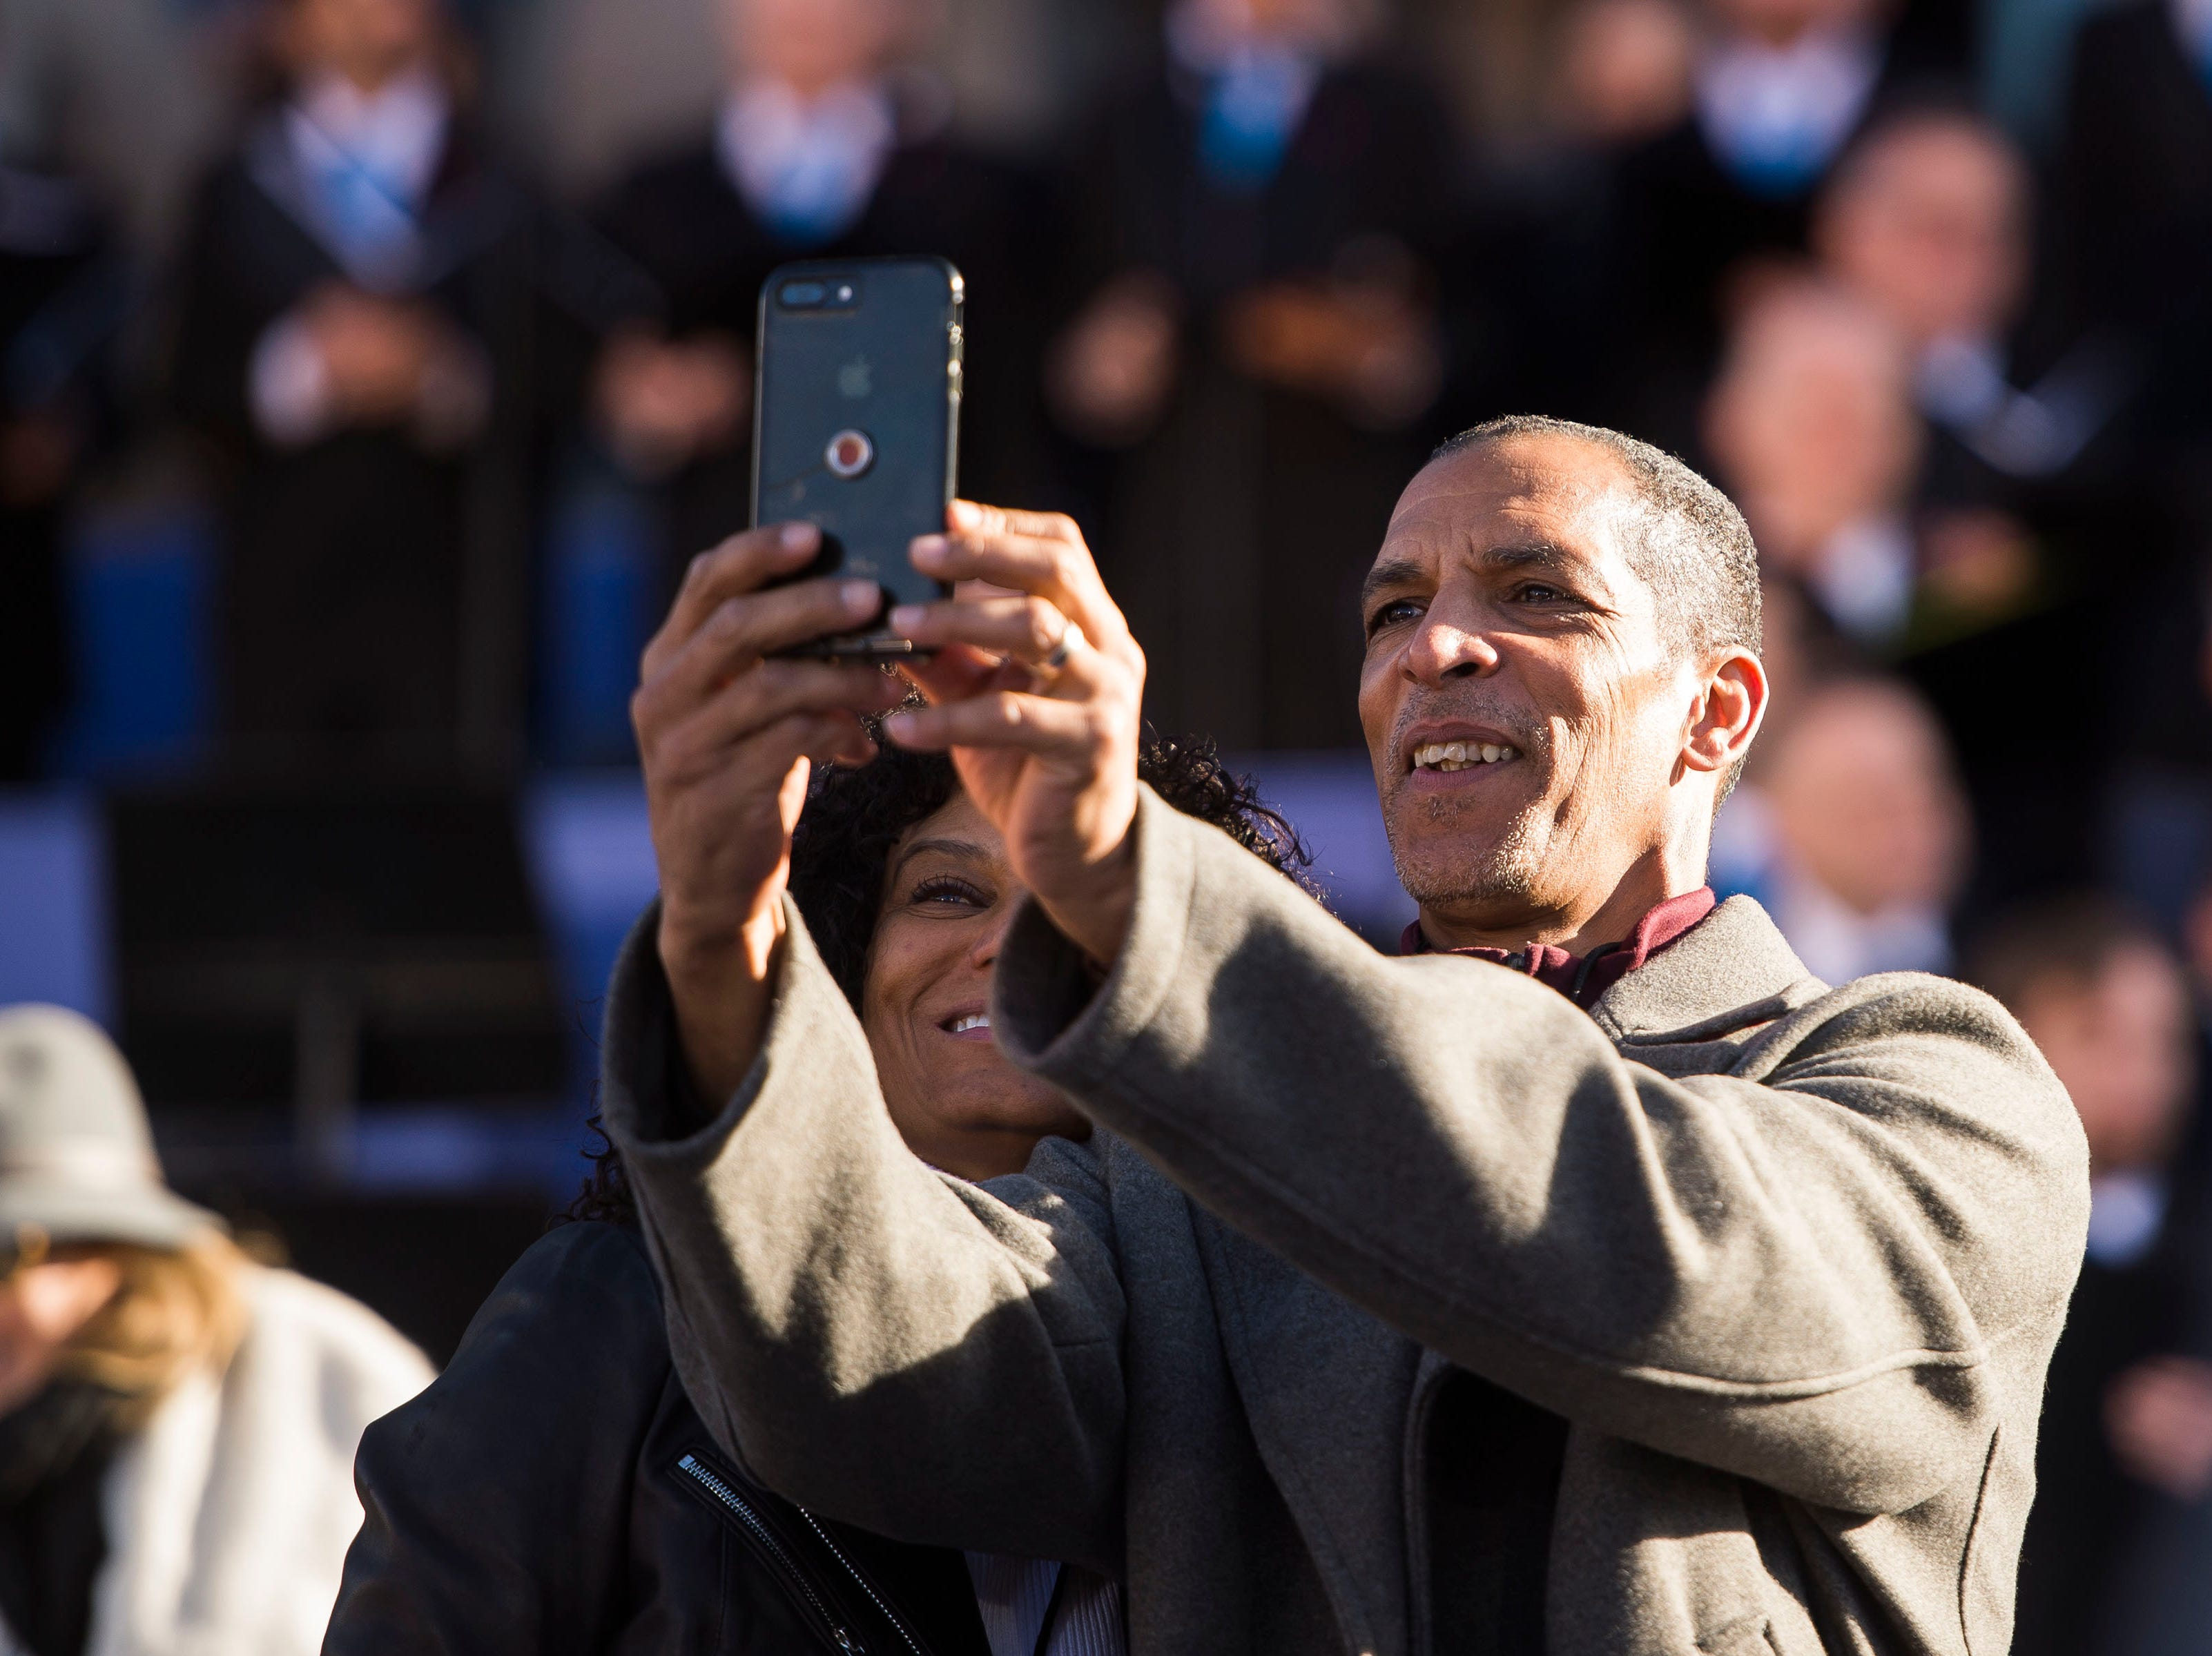 Simply Pure, a Denver dispensary, CEO Wanda James, left, and COO Scott Durrah take a selphie before the inauguration of Colorado State Governor Jared Polis on Tuesday, Jan. 8, 2019, in front of the Colorado State Capital building in Denver, Colo.